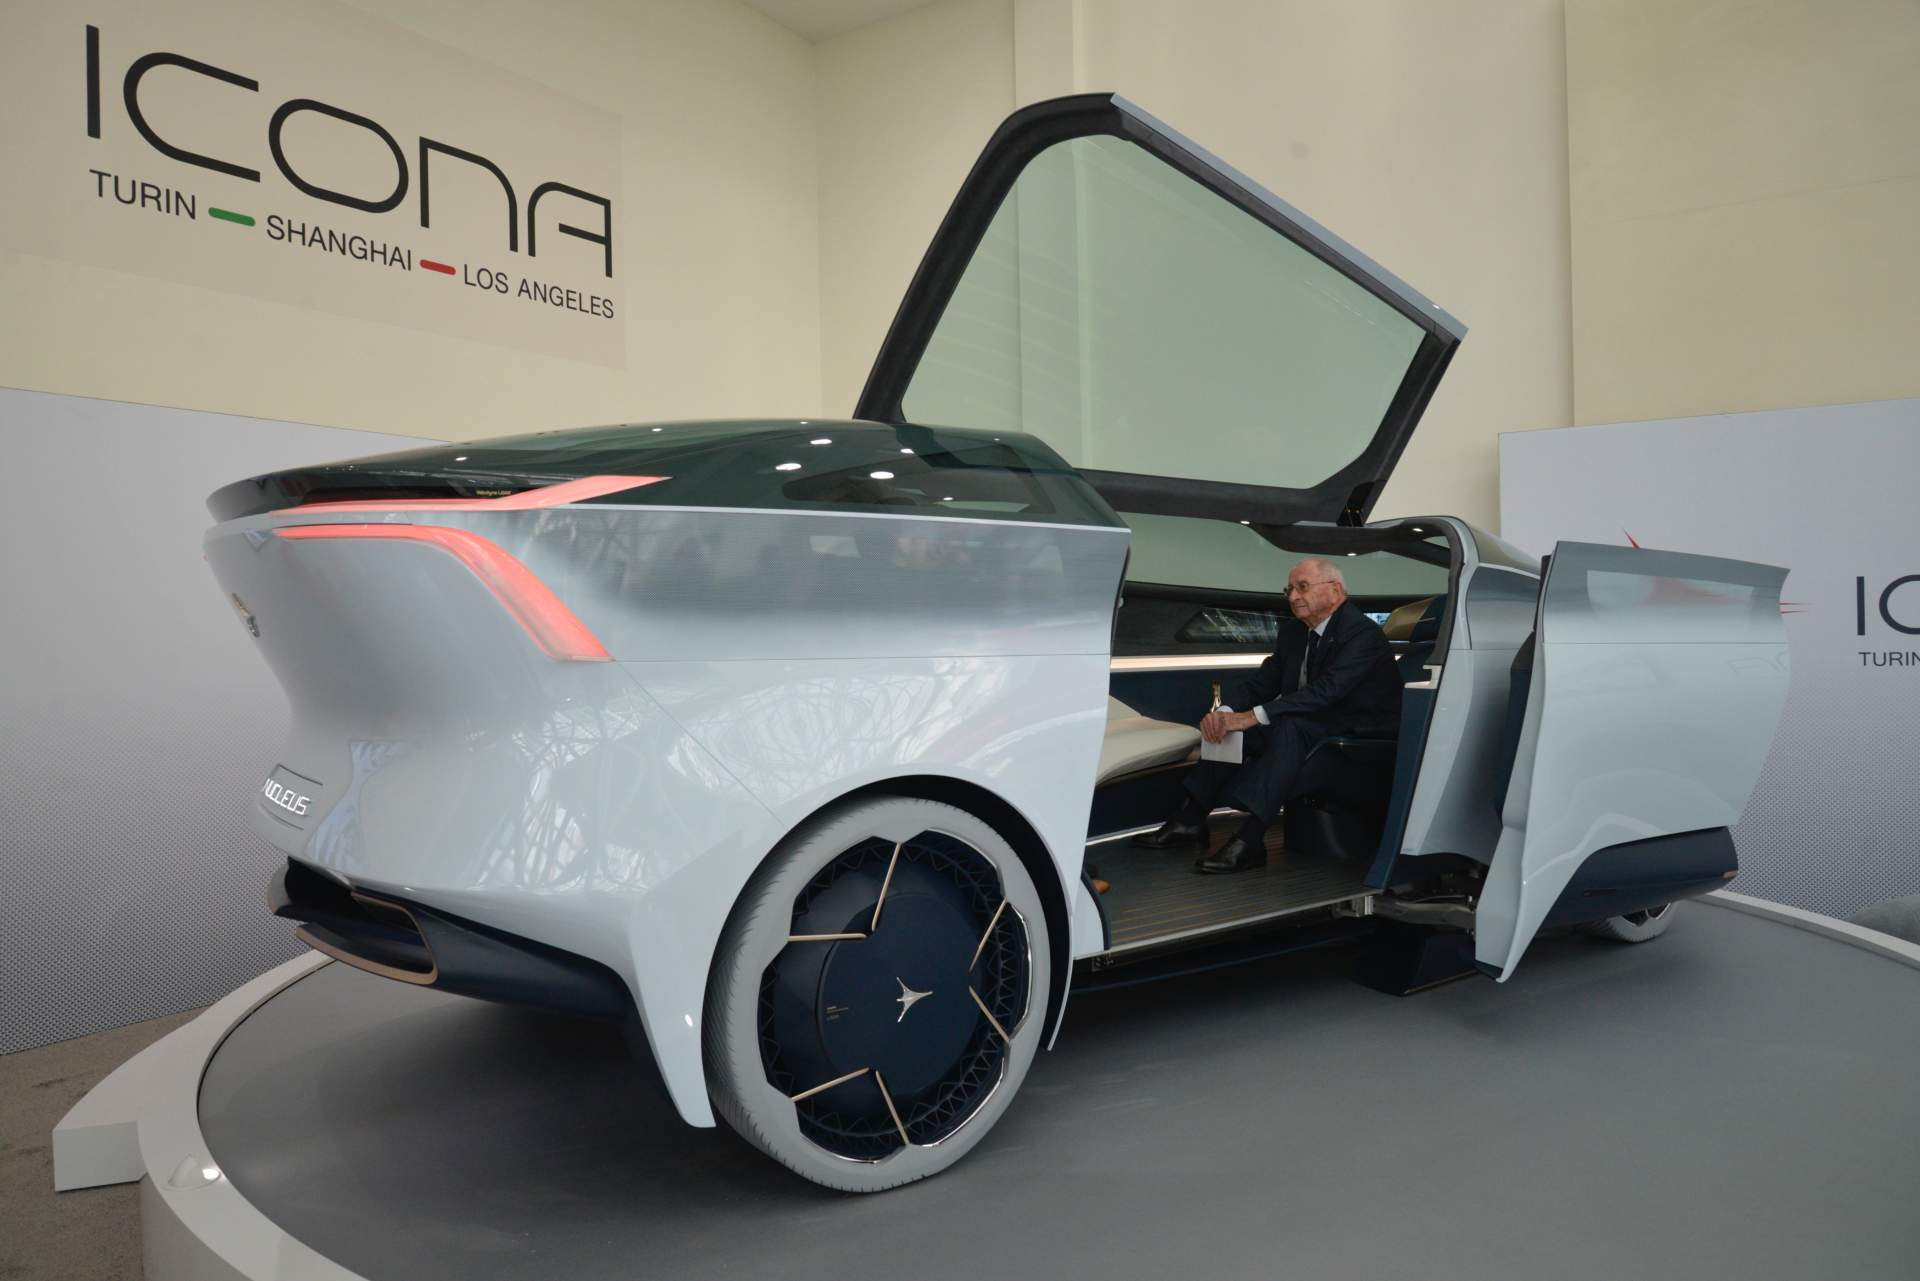 Auto Couch Icona Nucleus Concept Previews A Future Petrolheads Hate To Think